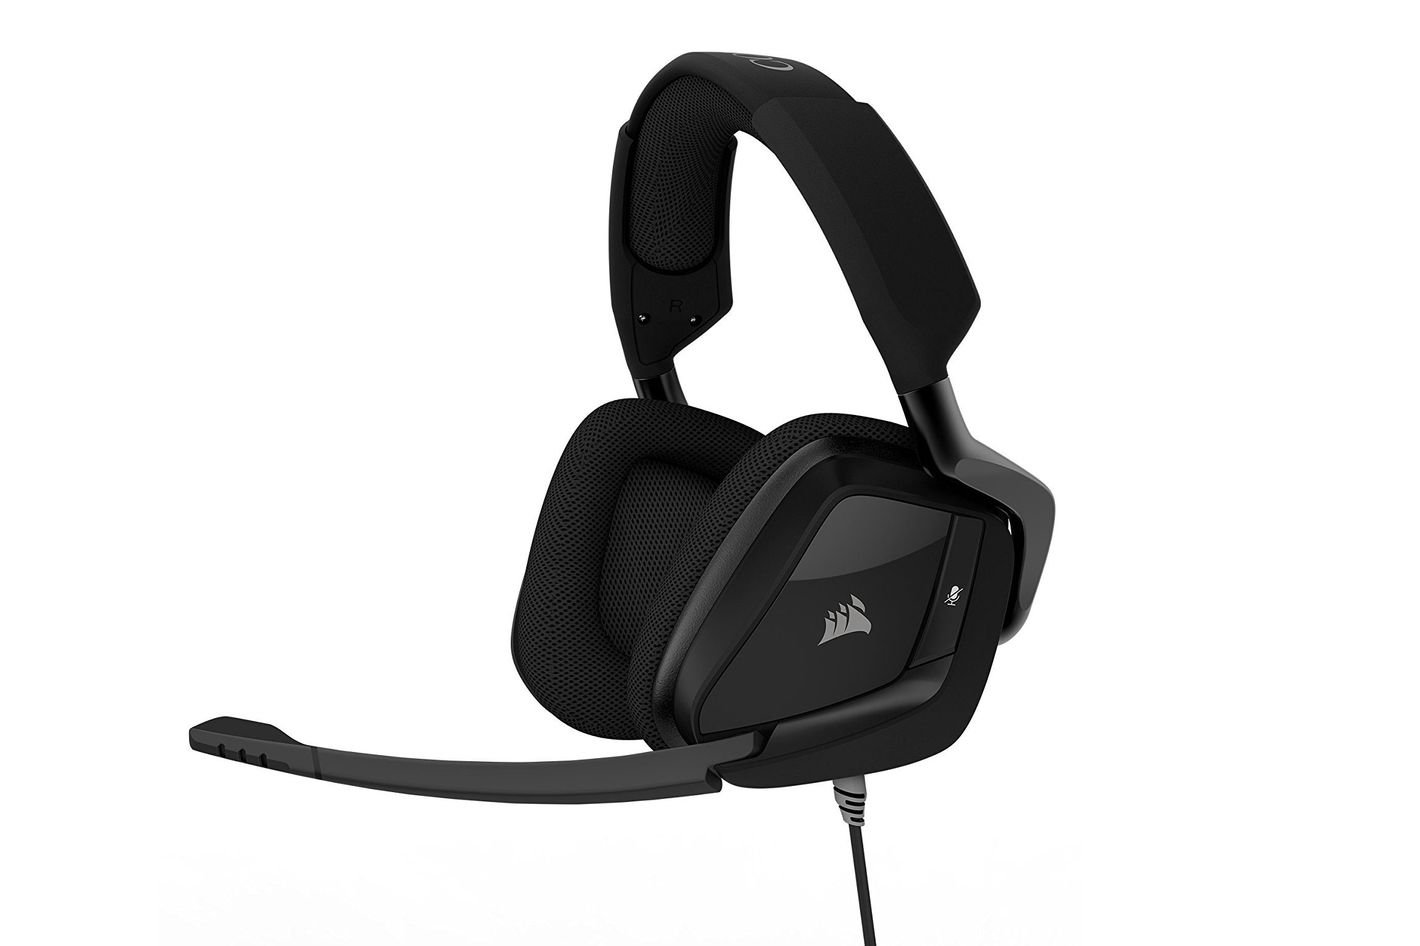 Corsair Void Pro Surround Gaming Headset